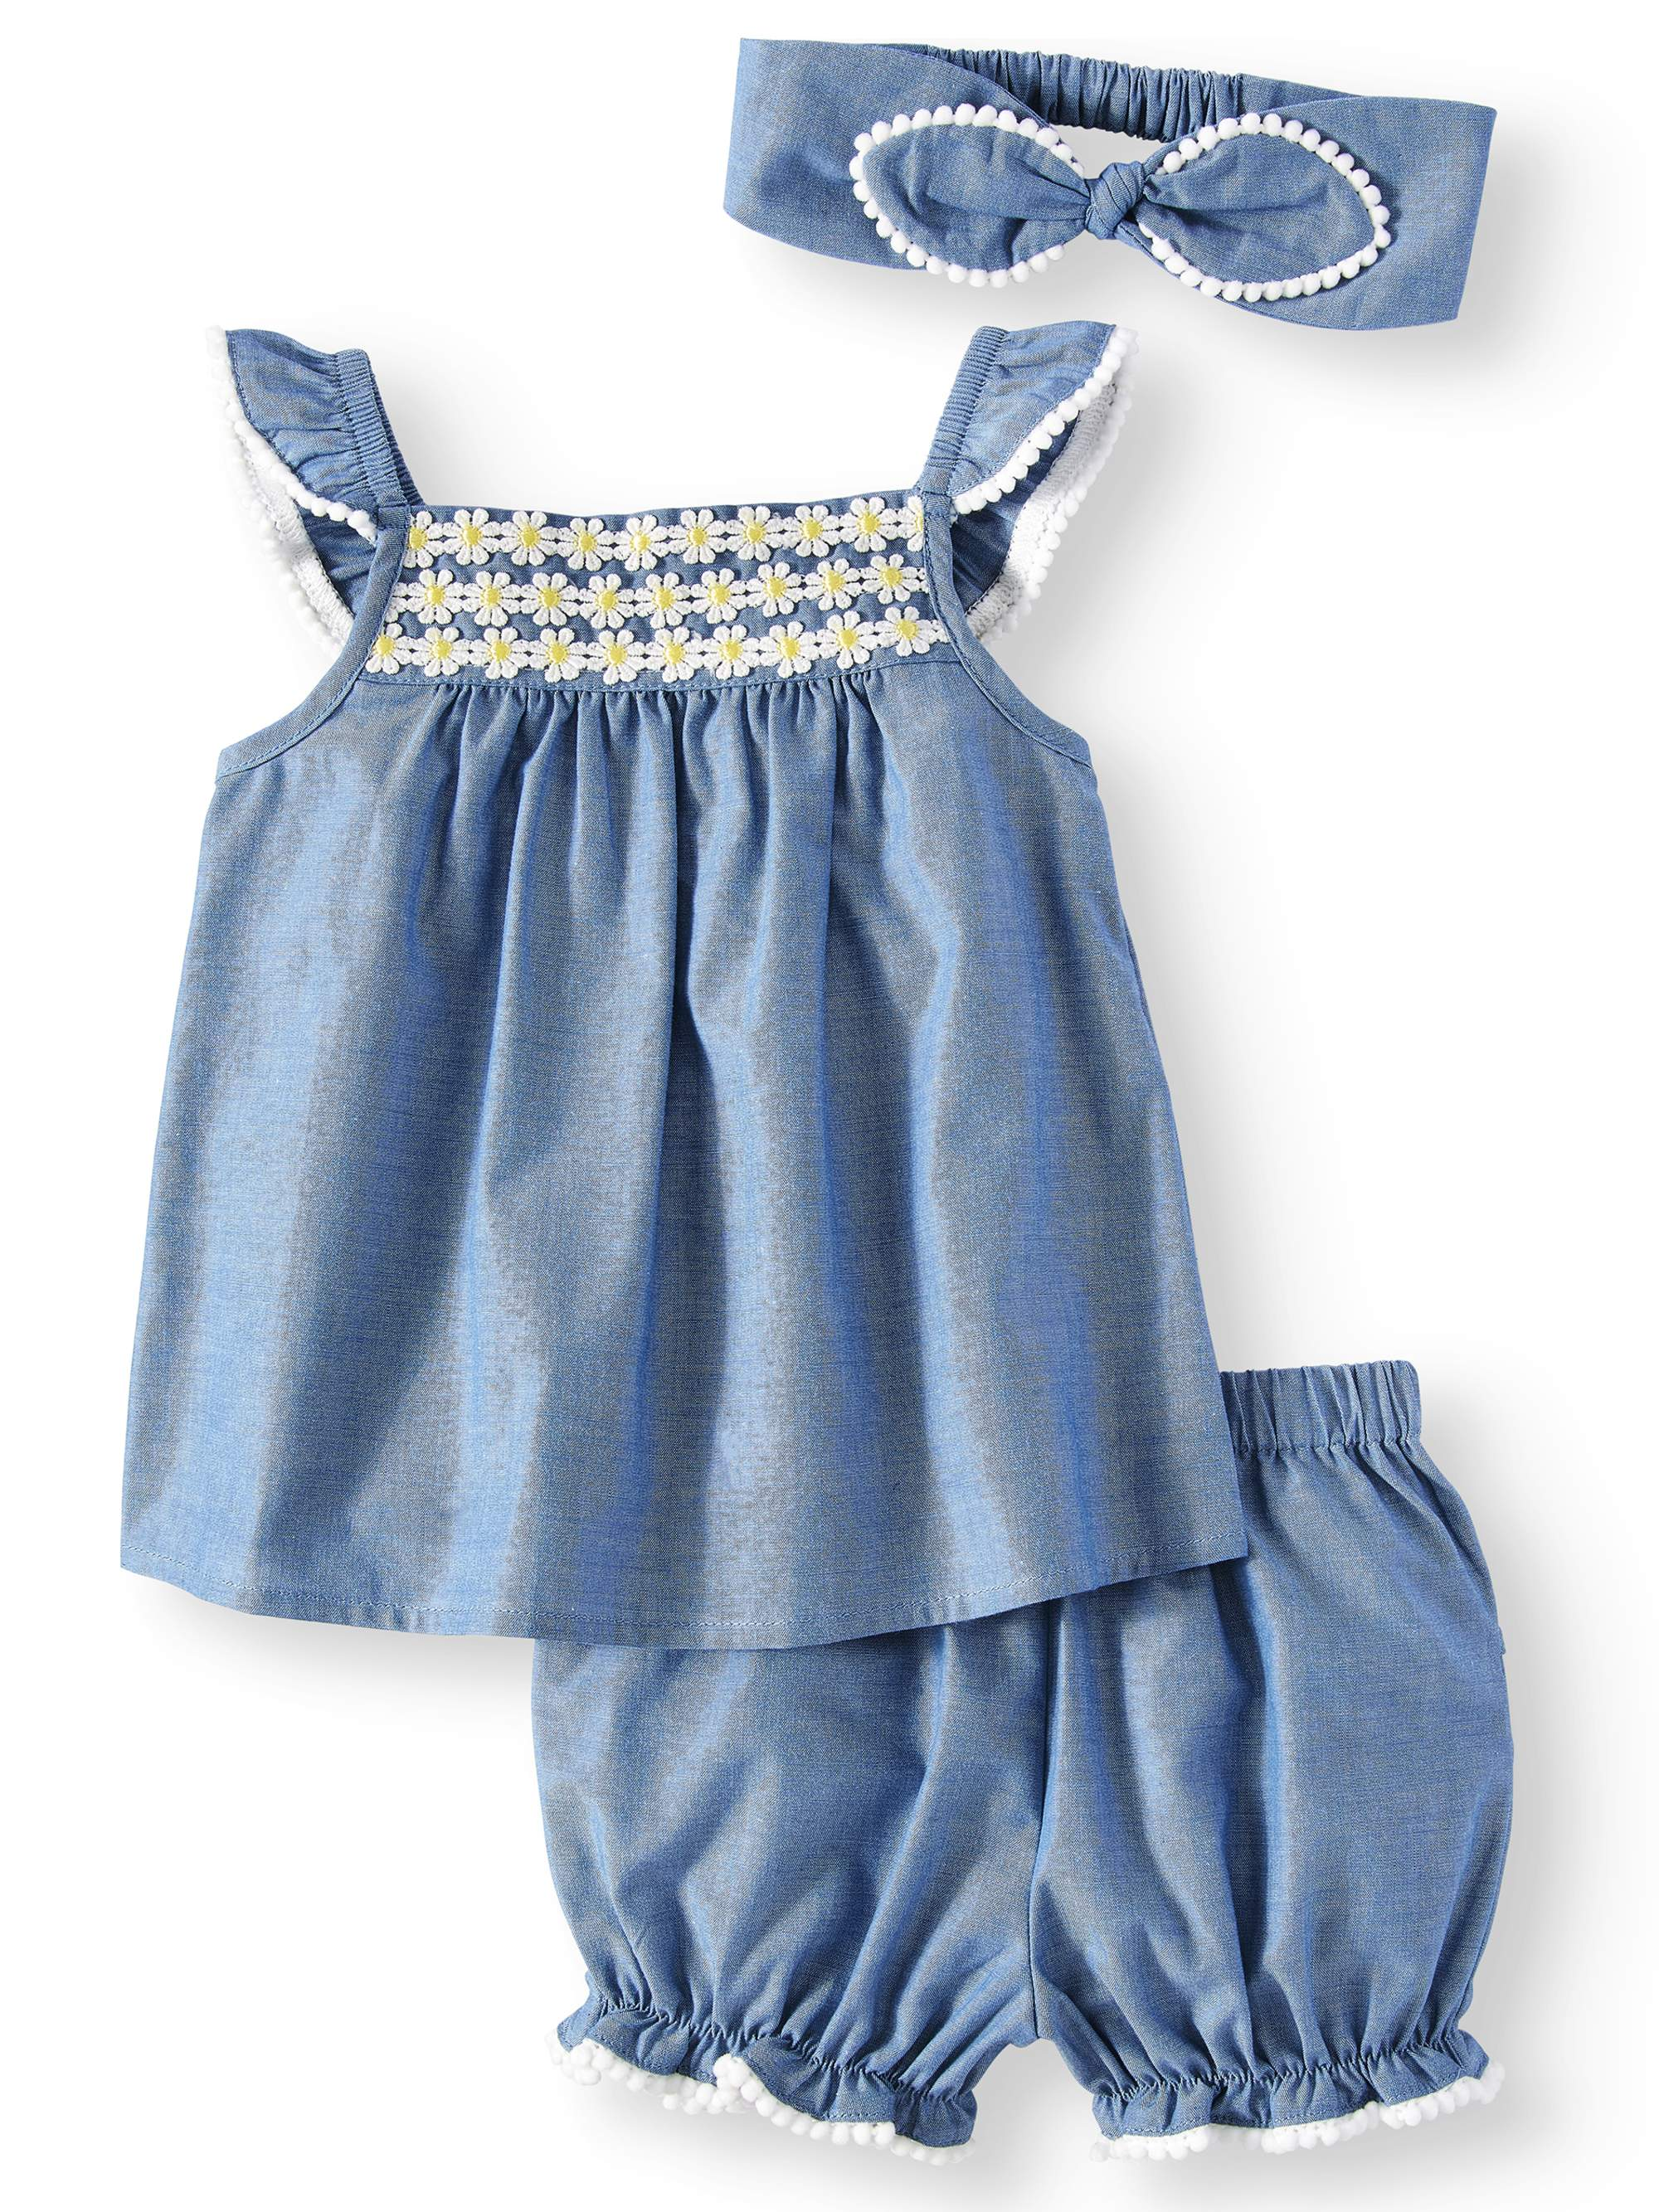 Chambray Woven Babydoll Top, Diaper Cover and Headband, 3pc Set (Baby Girls)